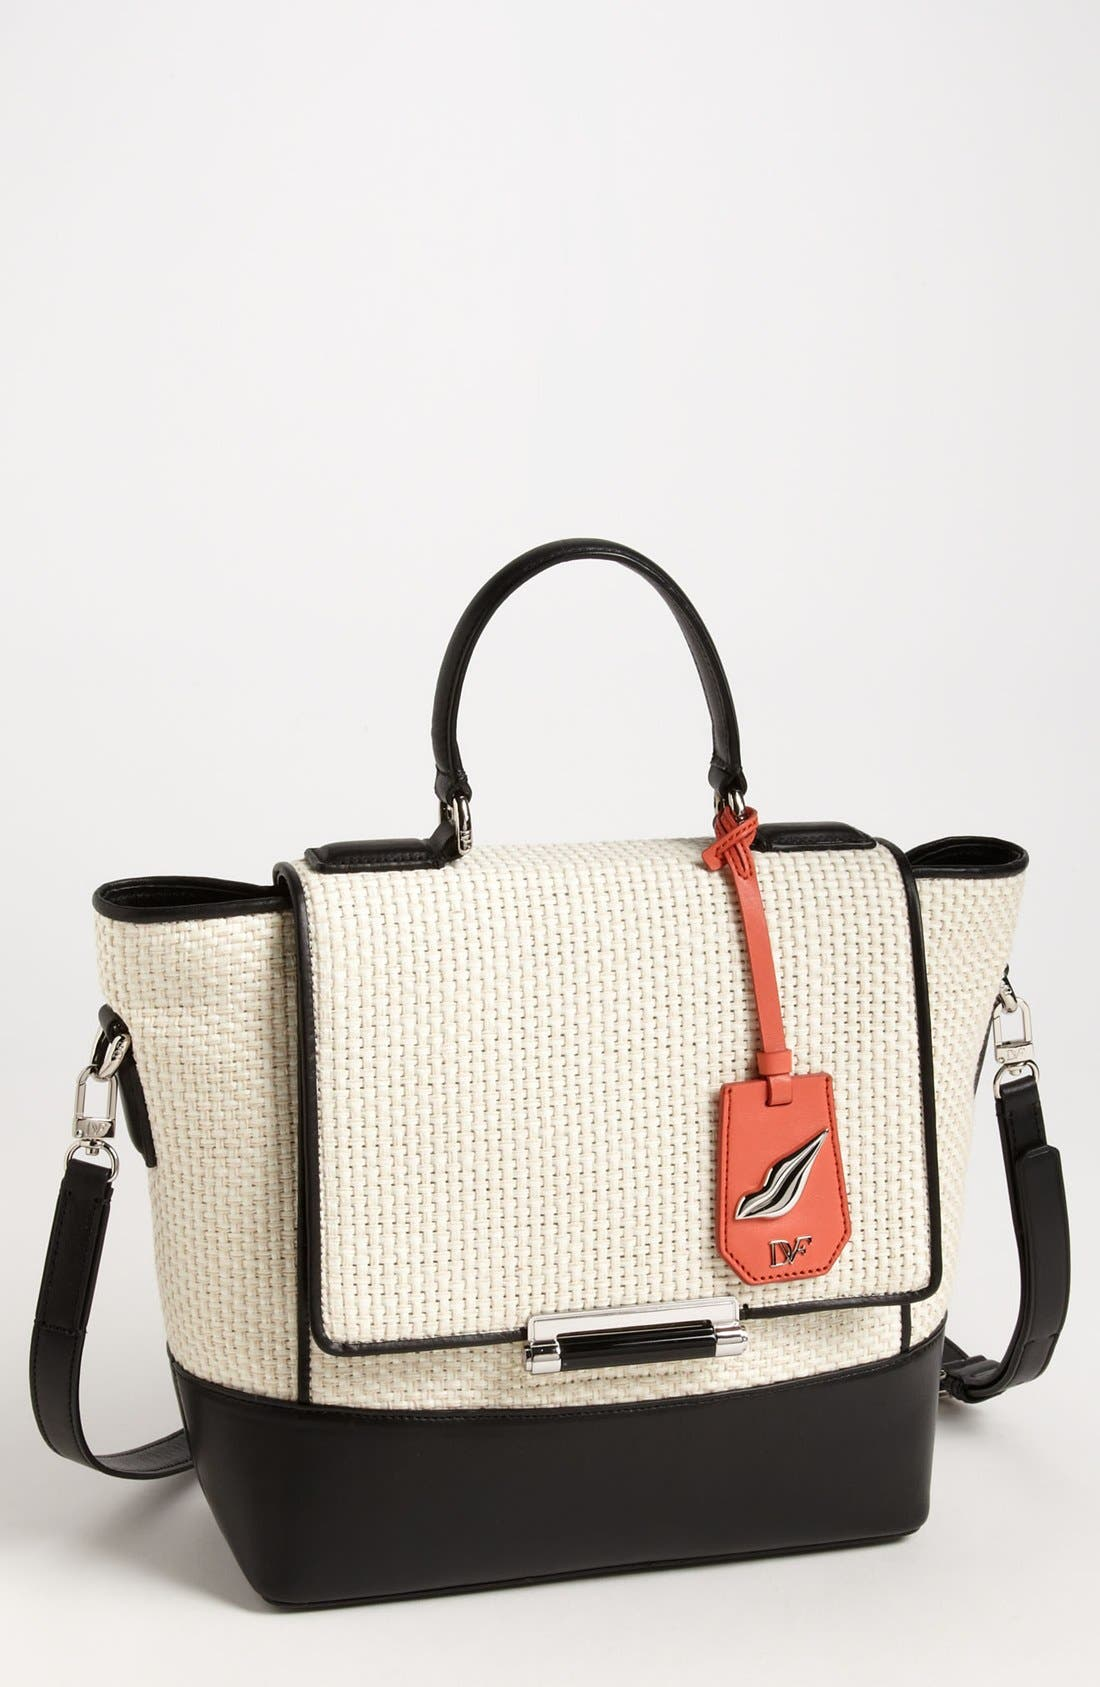 Main Image - Diane von Furstenberg '440 Top Handle - Small' Tote